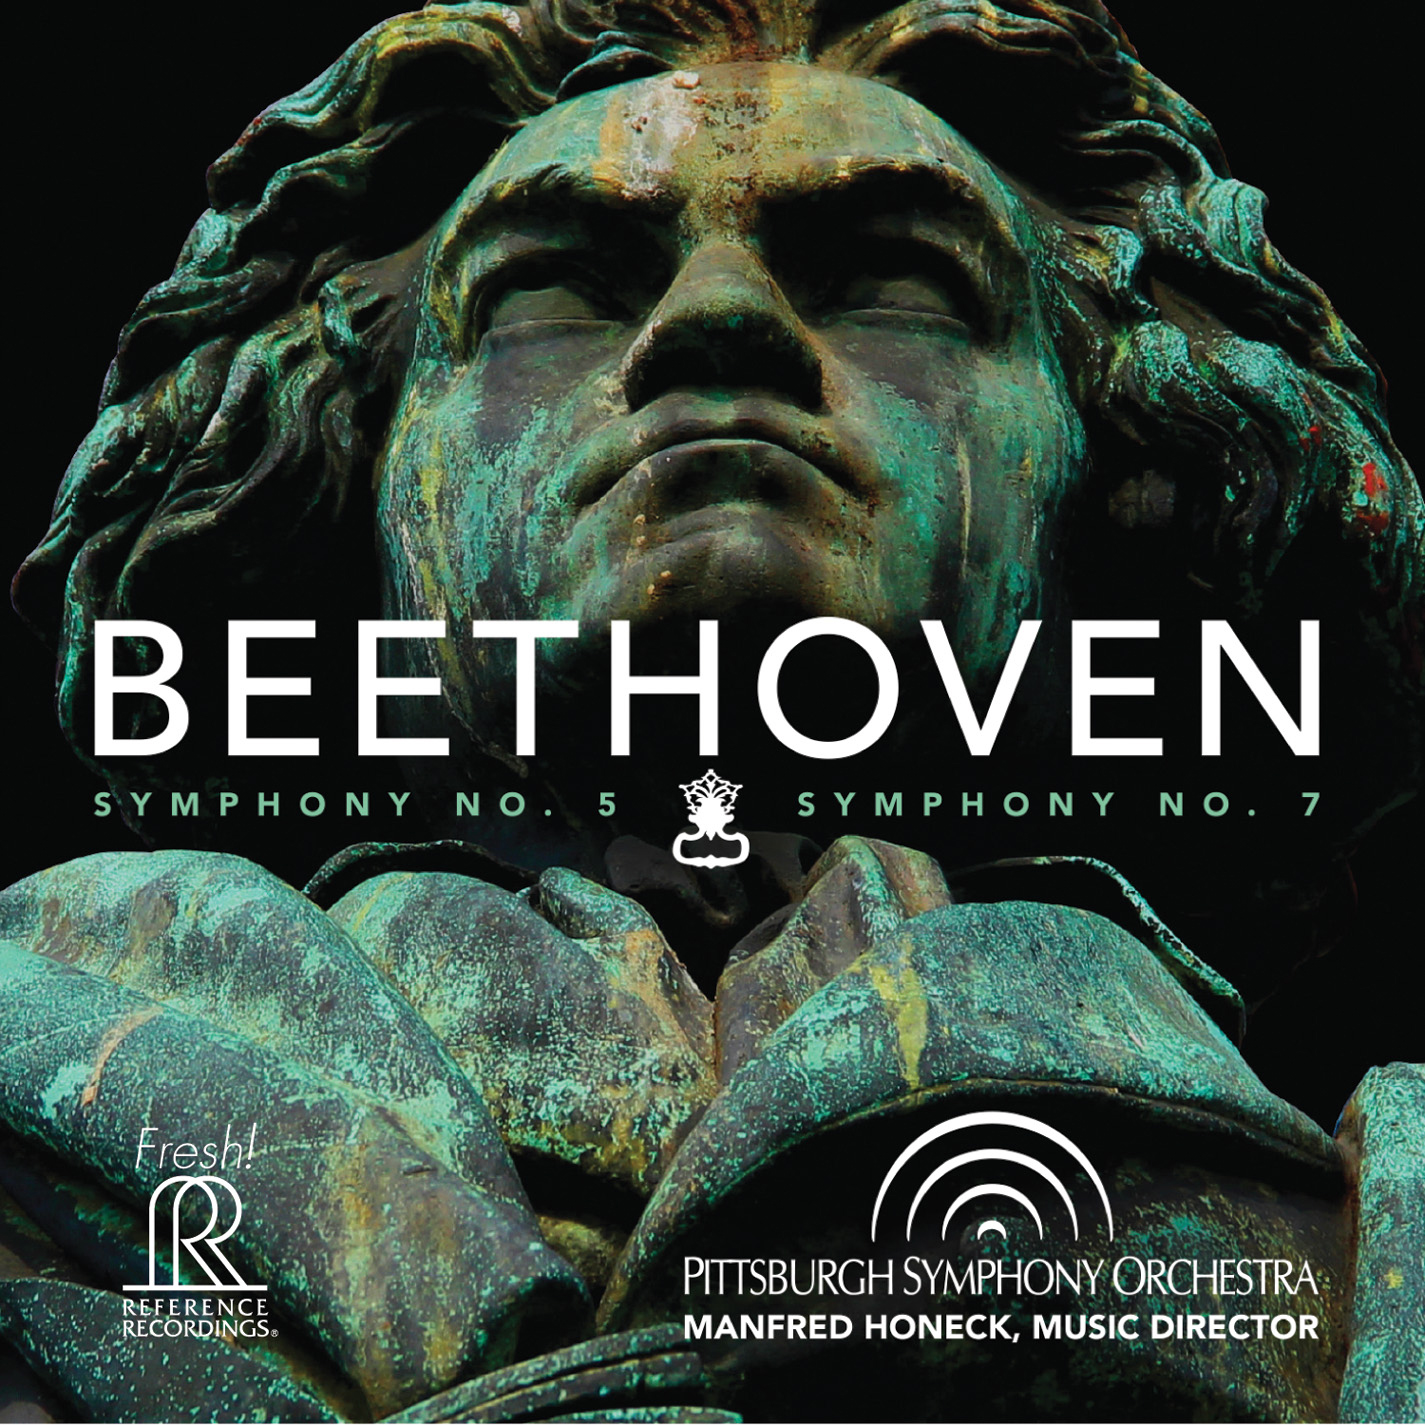 Manfred Honeck & Pittsburgh Symphony Orchestra: Beethoven: Symphony No 5 & No 7 - Reference Recordin